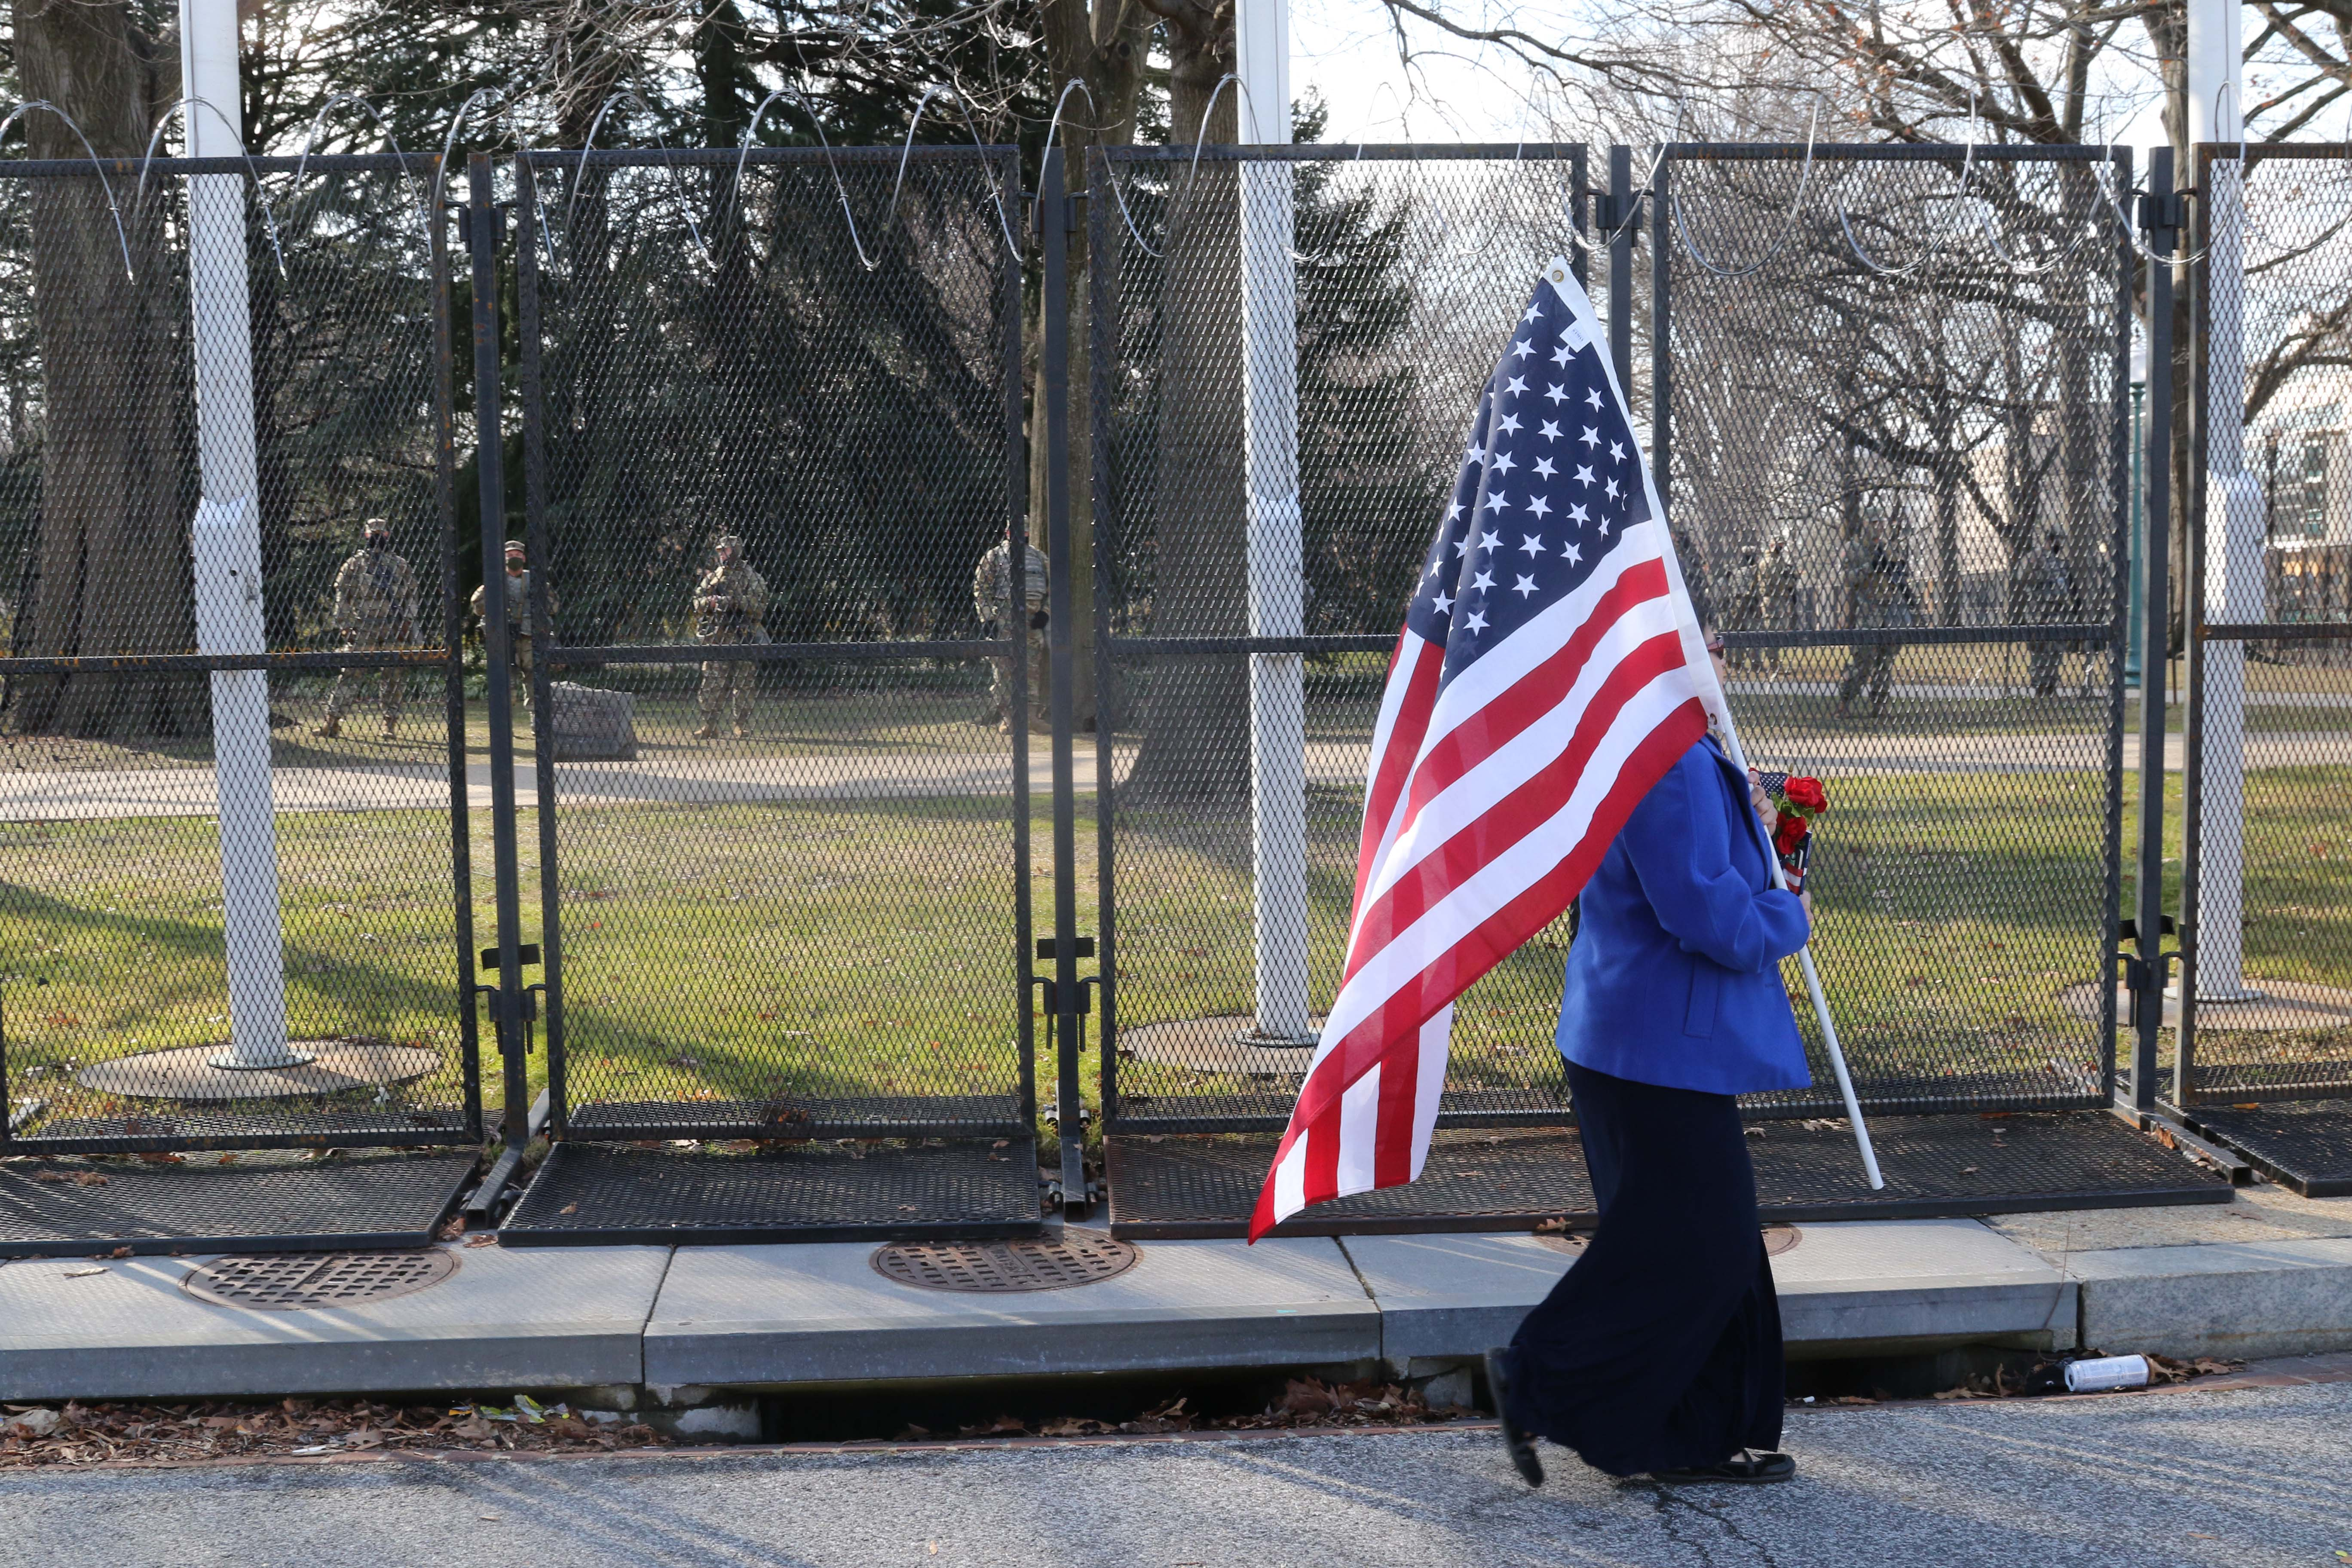 A woman walks past a line of soldiers while carrying the American flag.